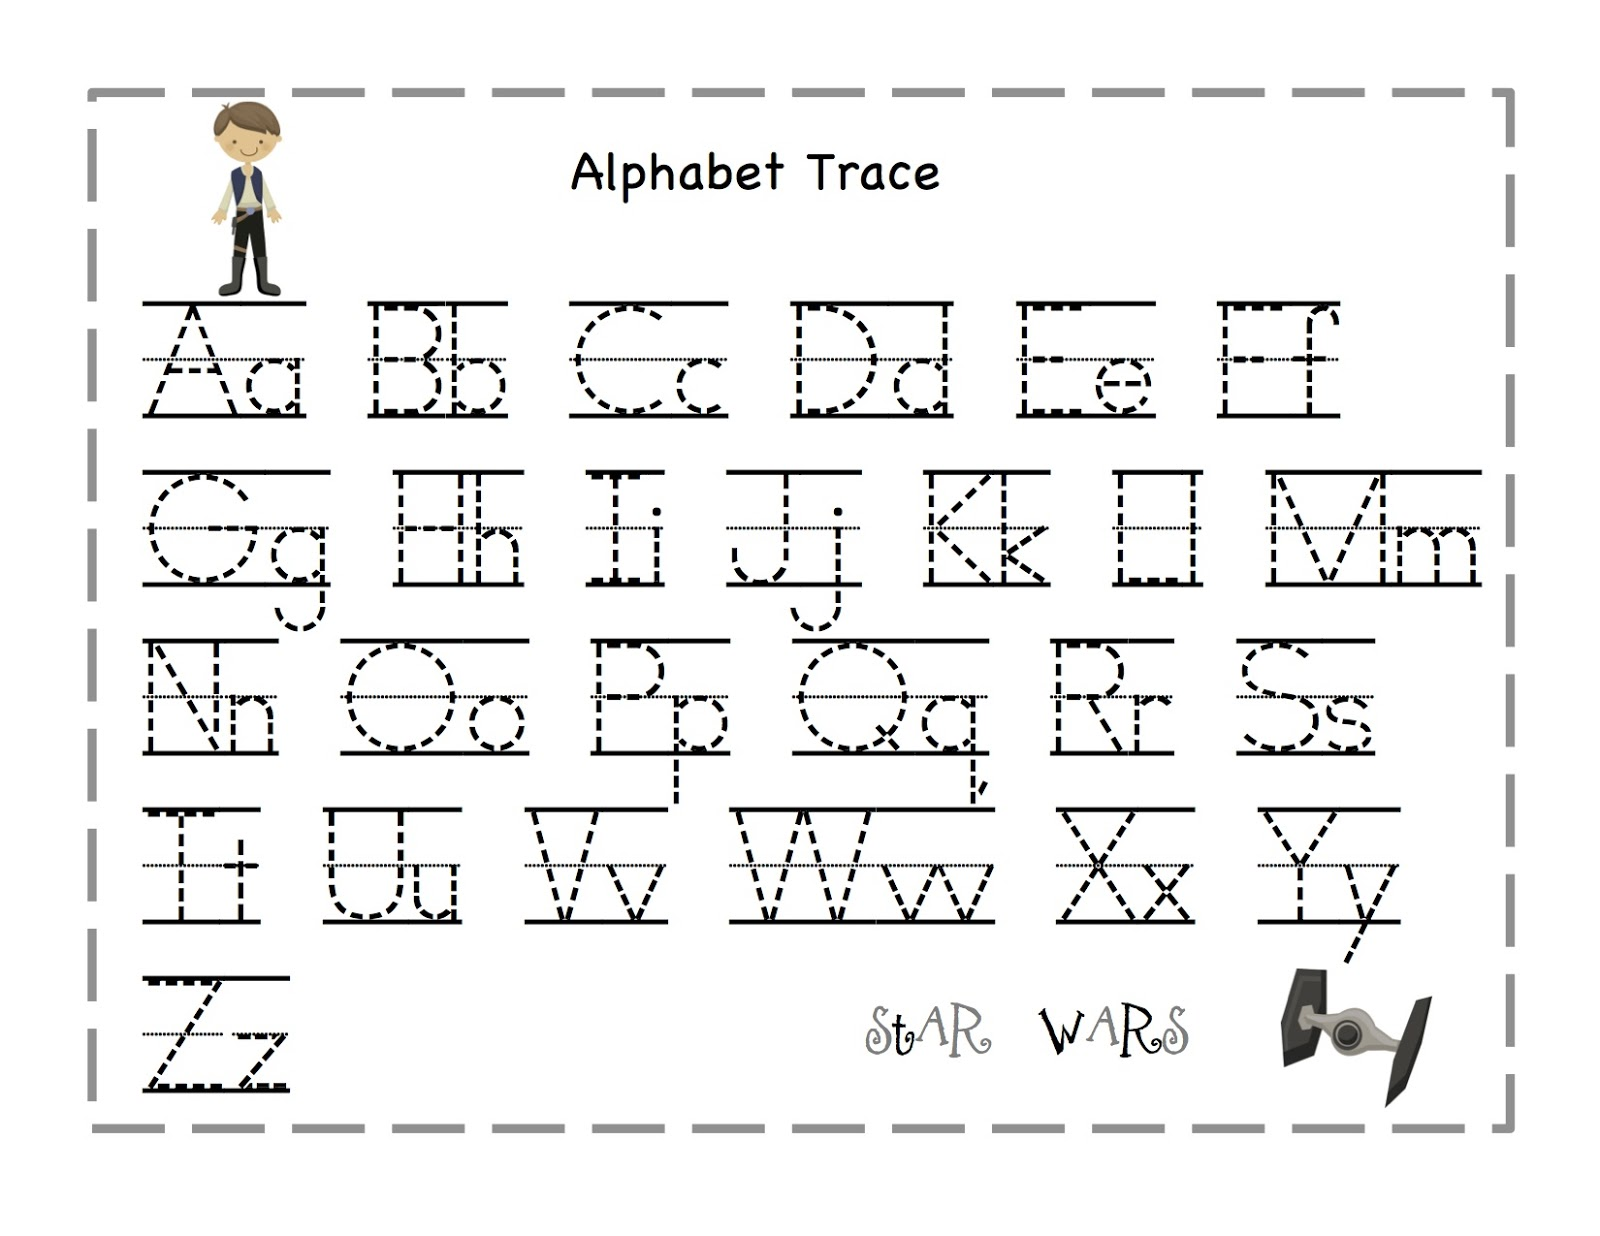 Worksheet Printable Letters For Preschool printables free printable preschool worksheets tracing letters worksheet alphabet a z kerriwaller intrepi